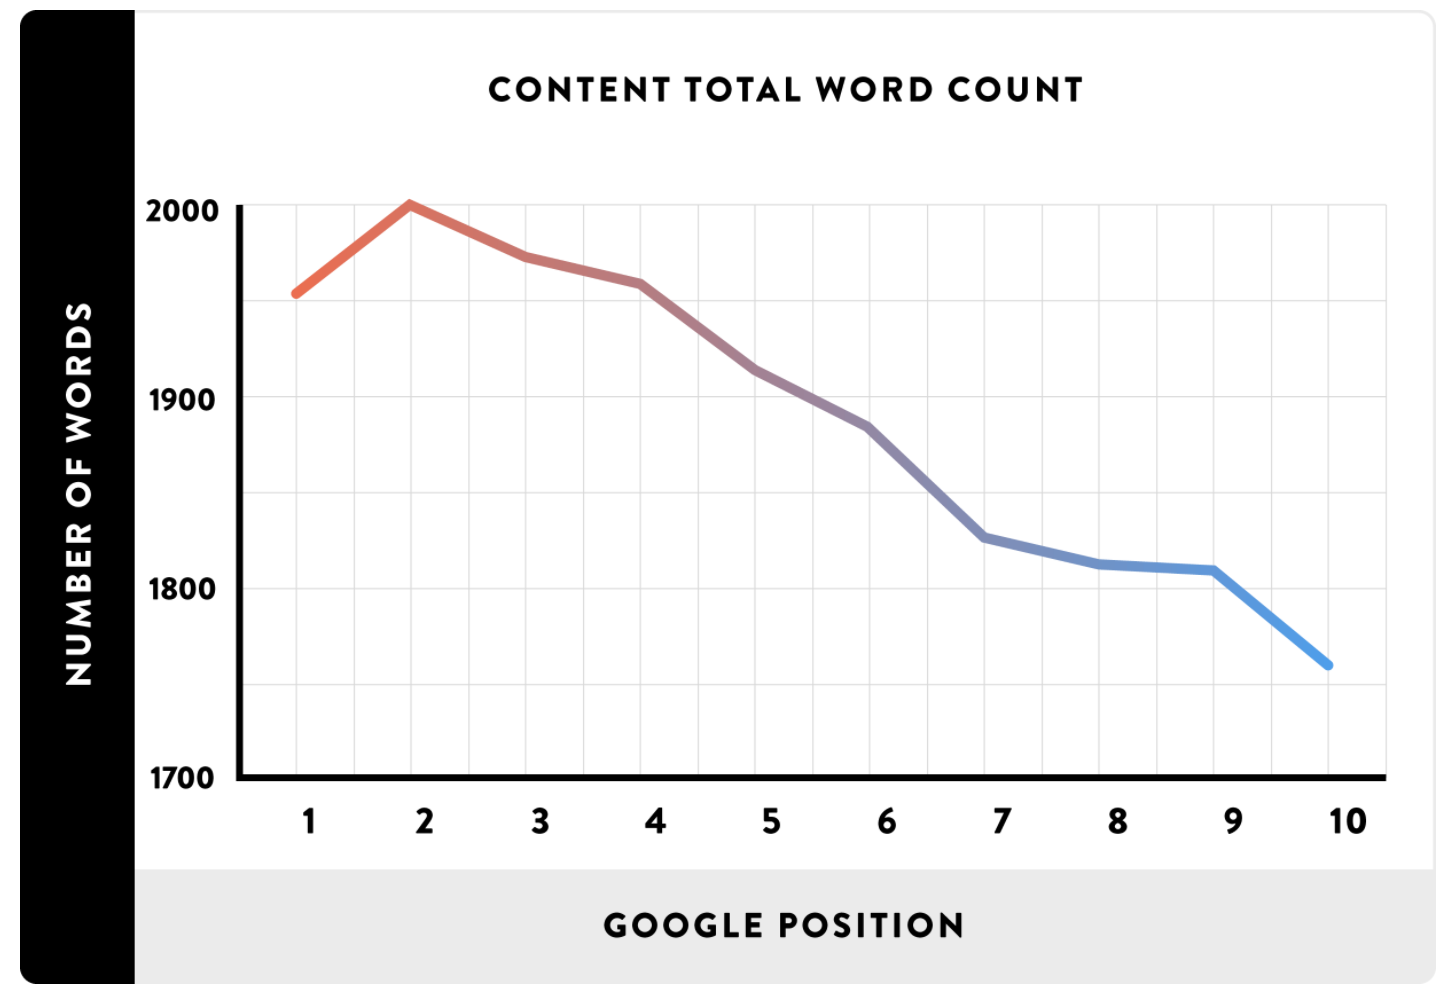 Graph showing content total word count